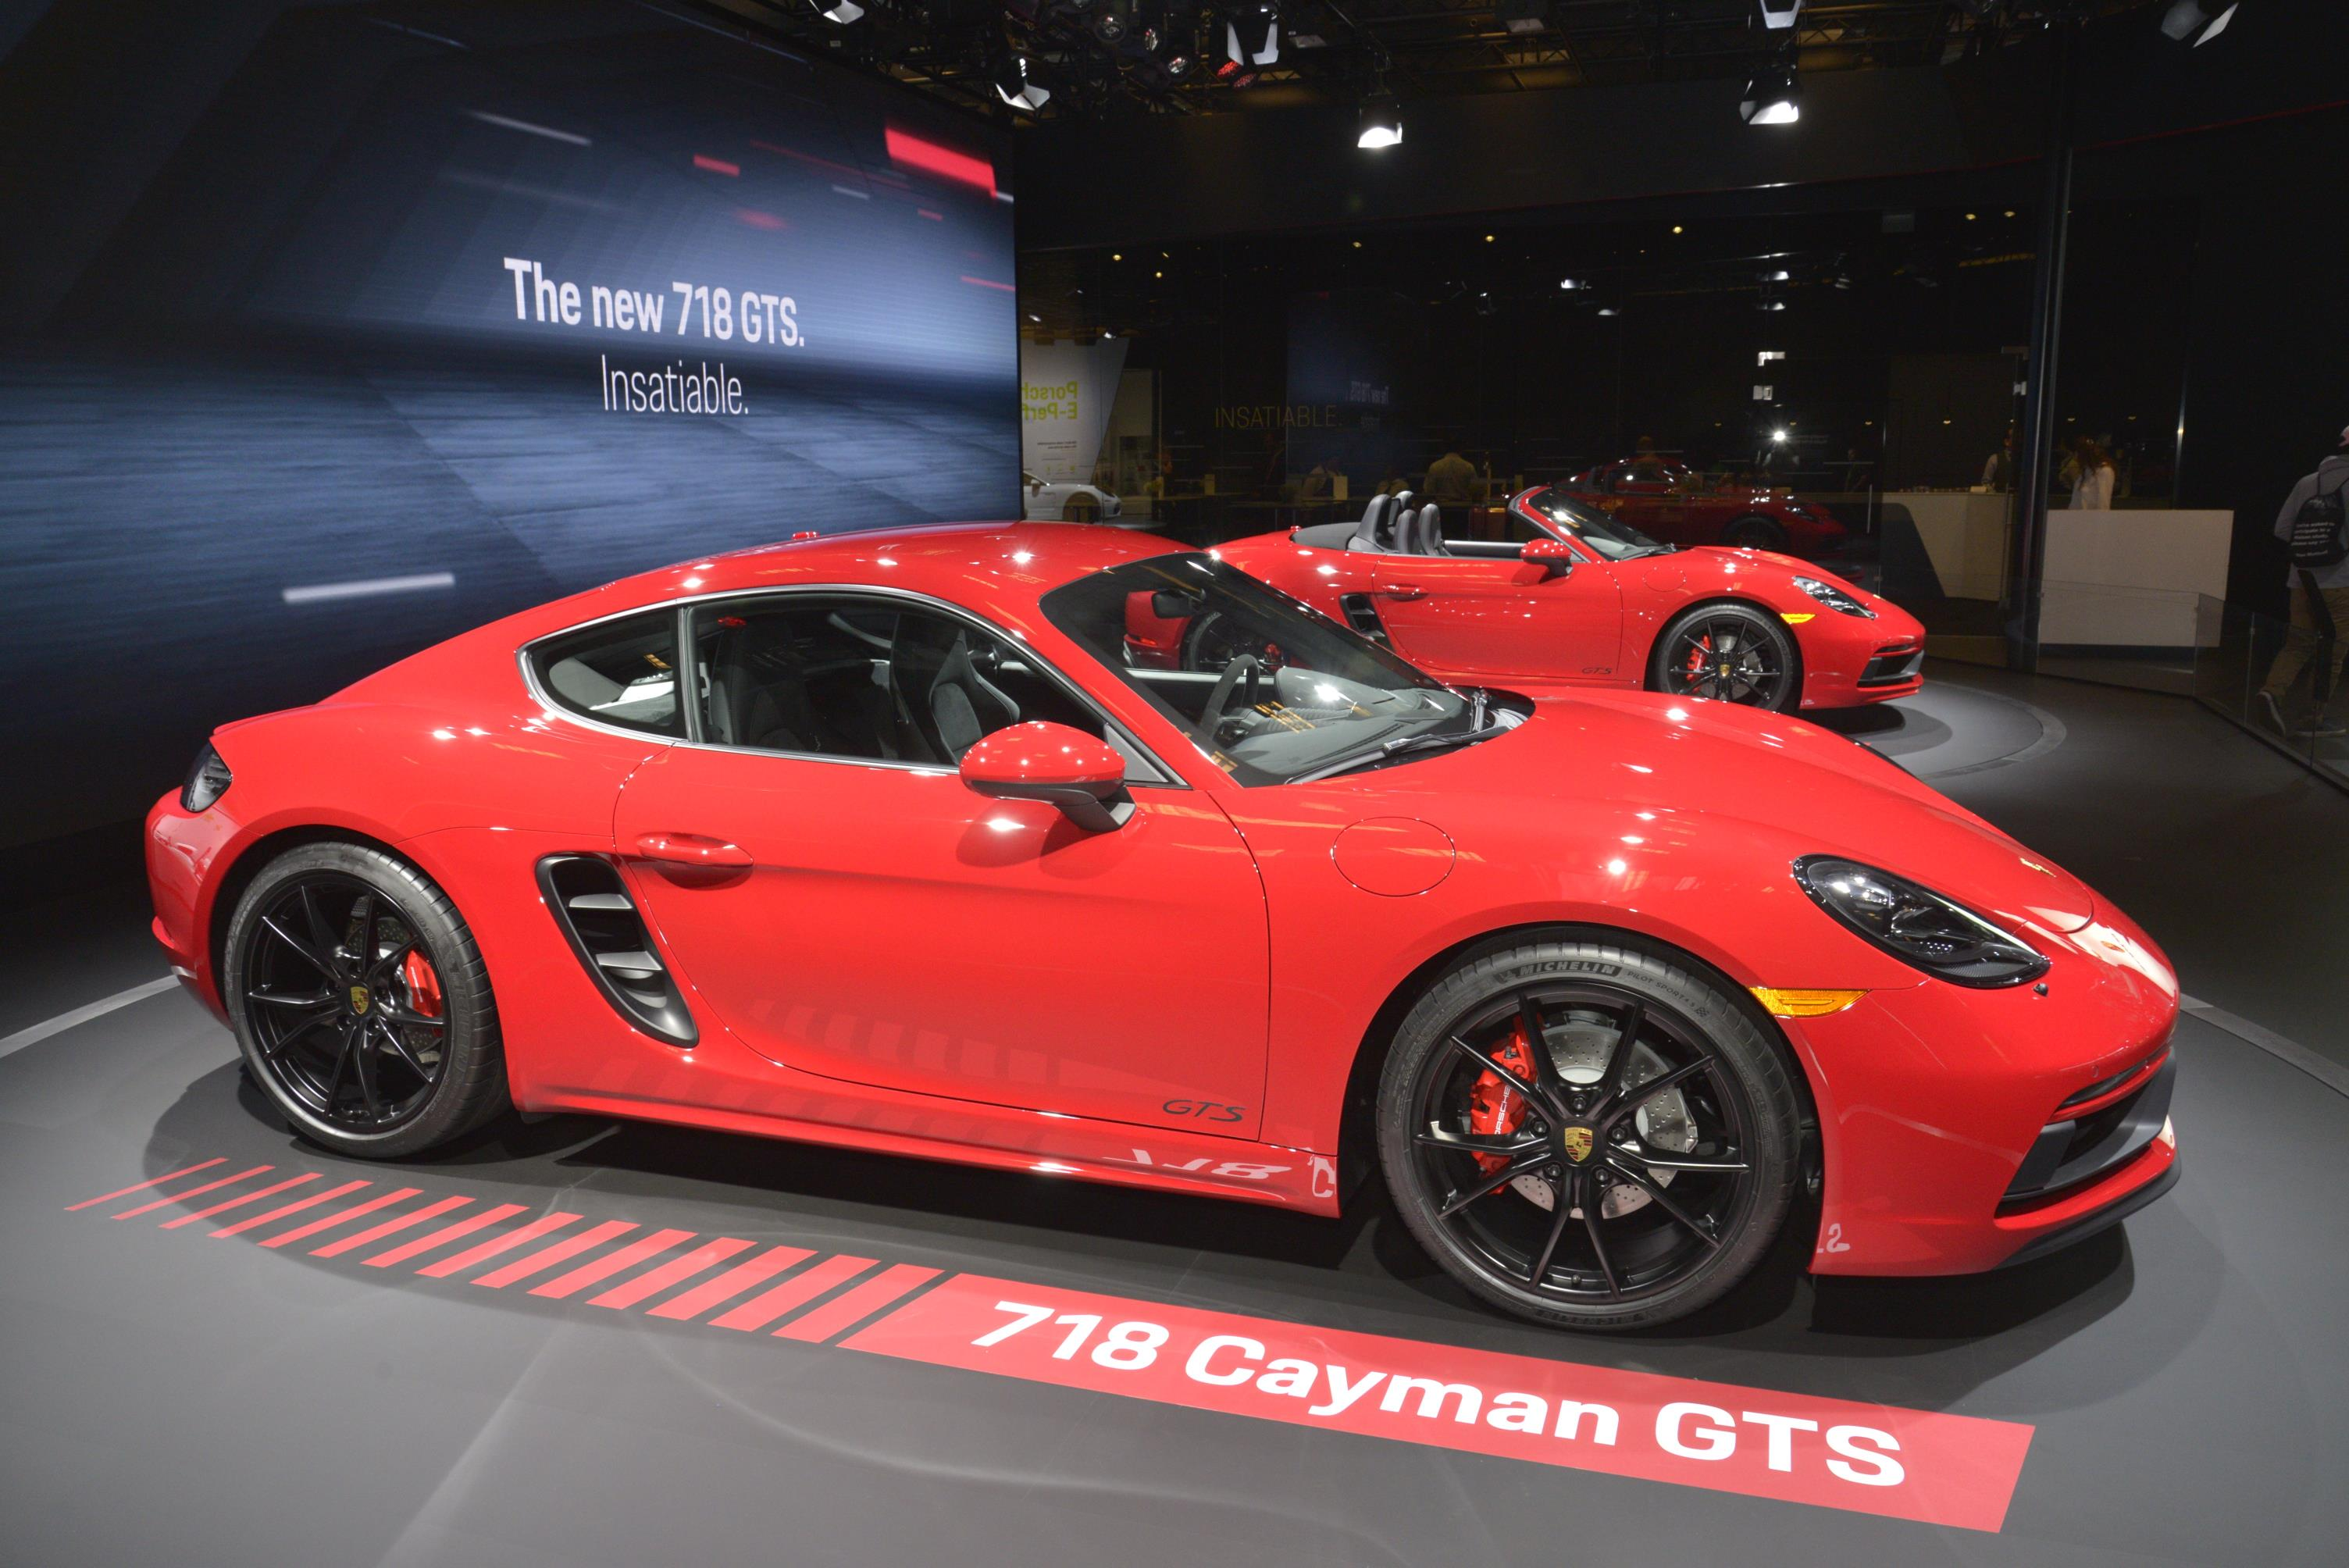 Porsche 911 992 >> Porsche 718 Cayman and Boxster GTS Are Very Red In Los Angeles - autoevolution